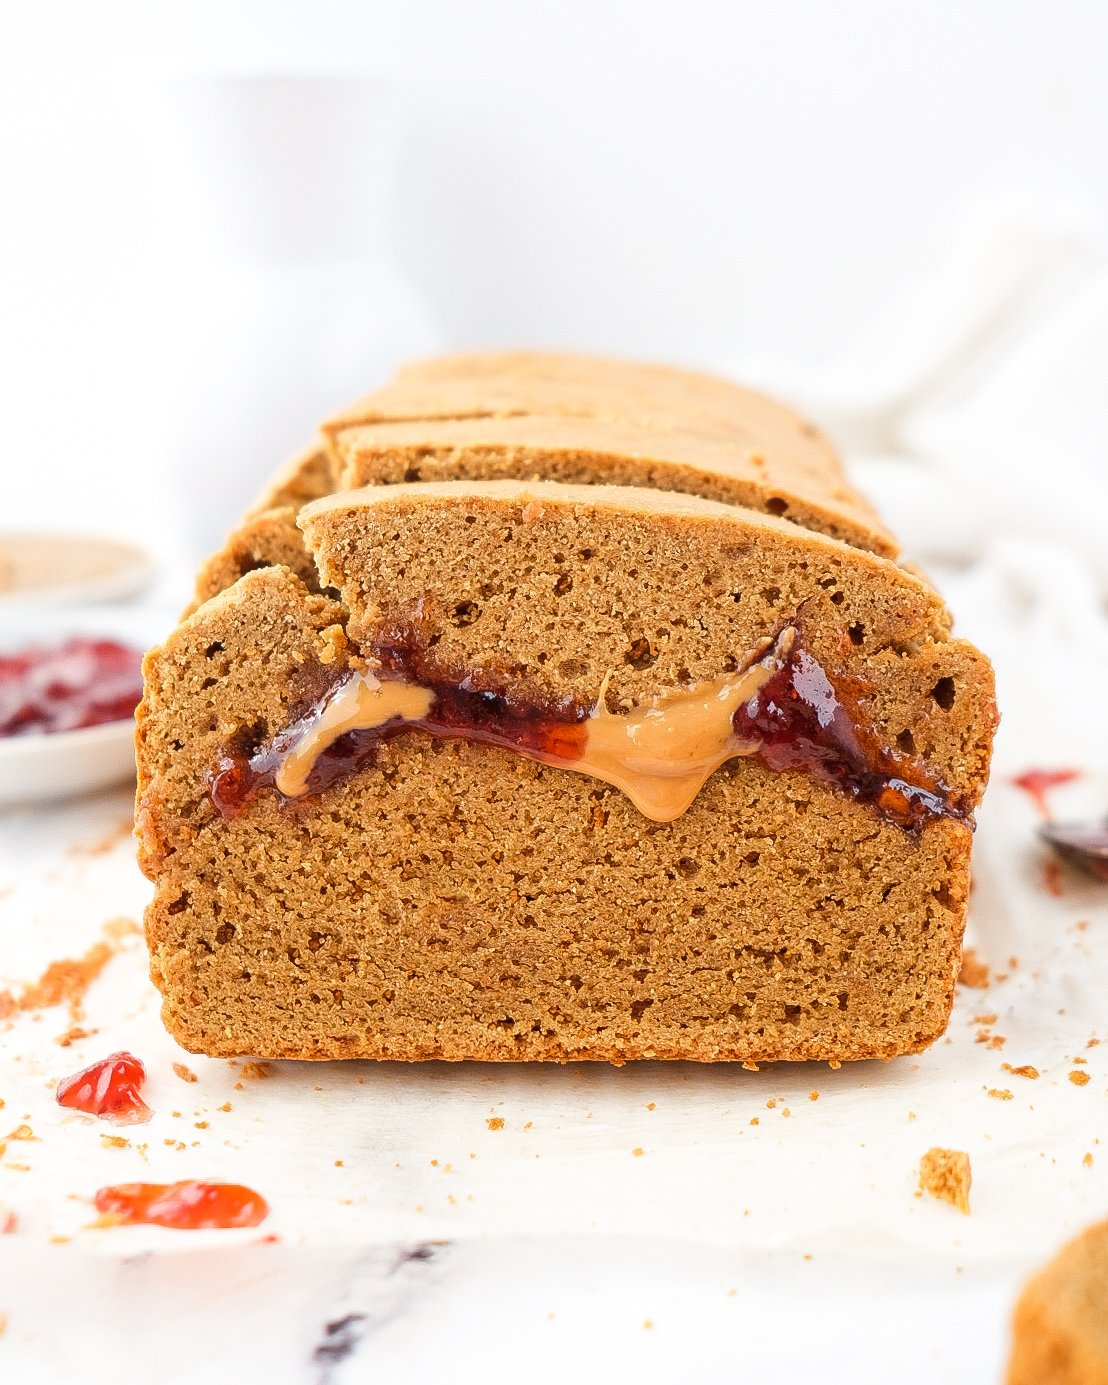 Double Peanut Butter & Jelly Bread (paleo & easily nut free)